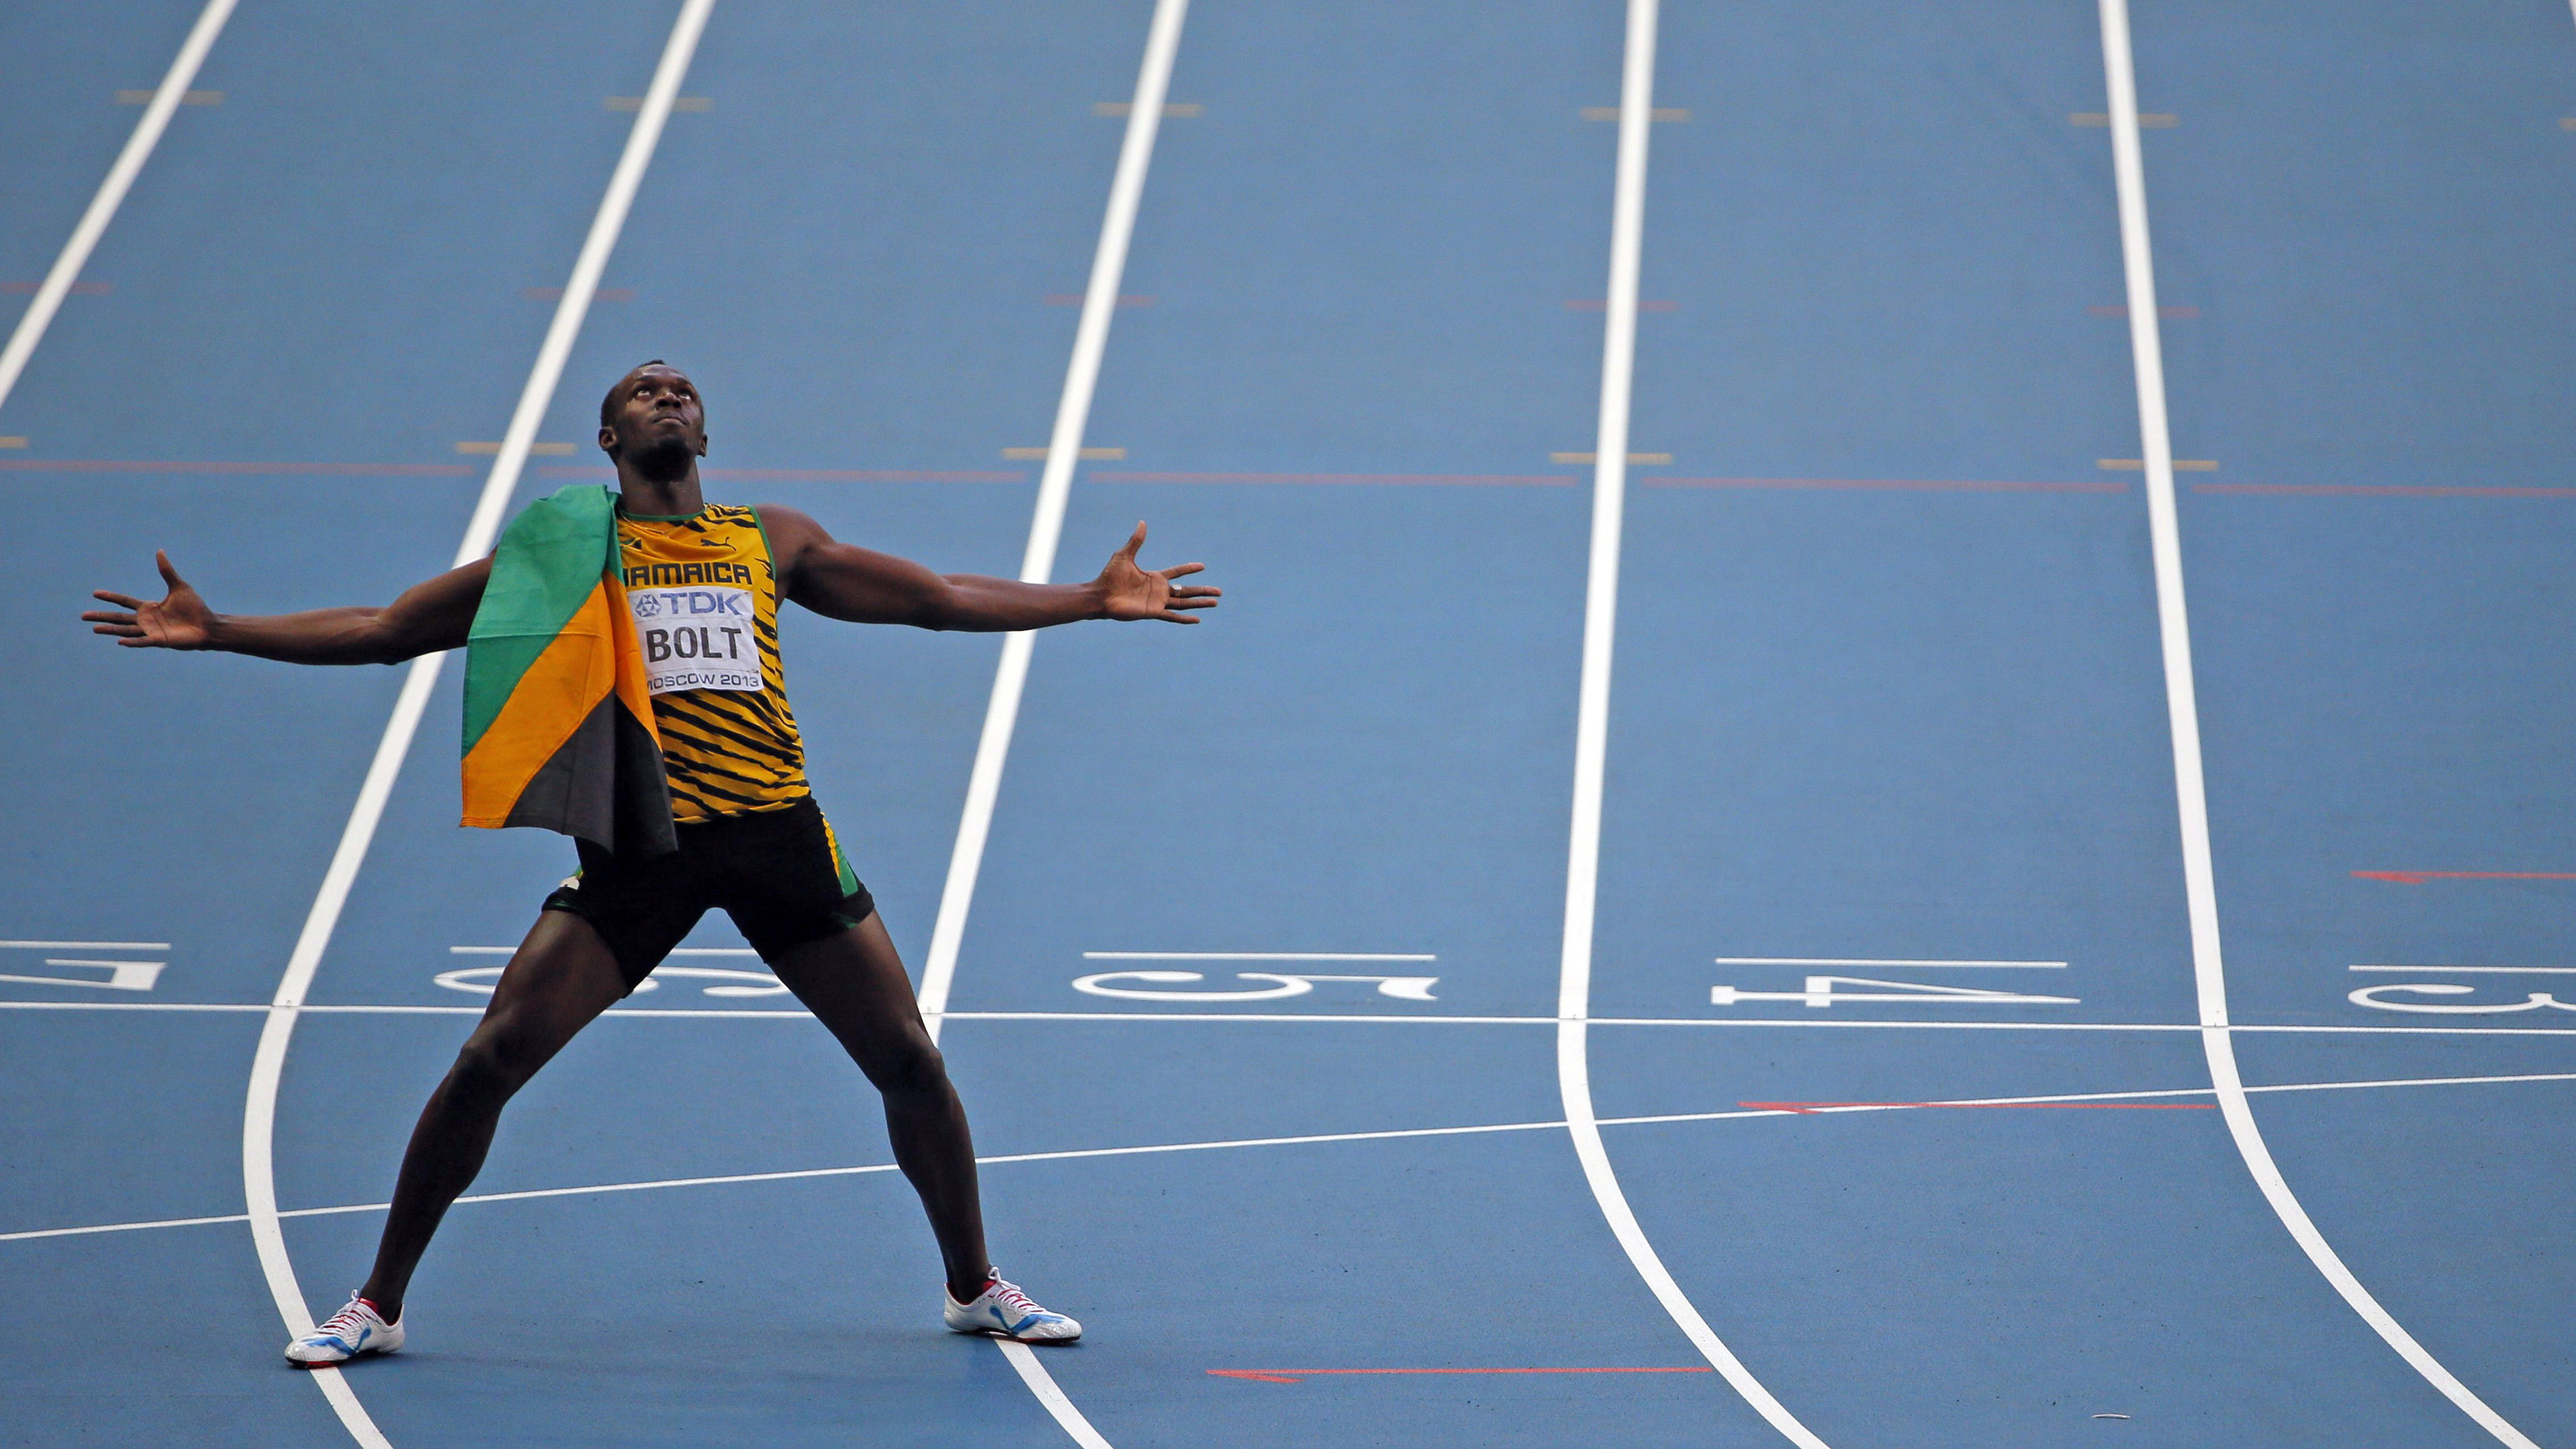 Winner Usain Bolt of Jamaica celebrates after the men's 200 metres final during the IAAF World Athletics Championships at the Luzhniki stadium in Moscow August 17, 2013.